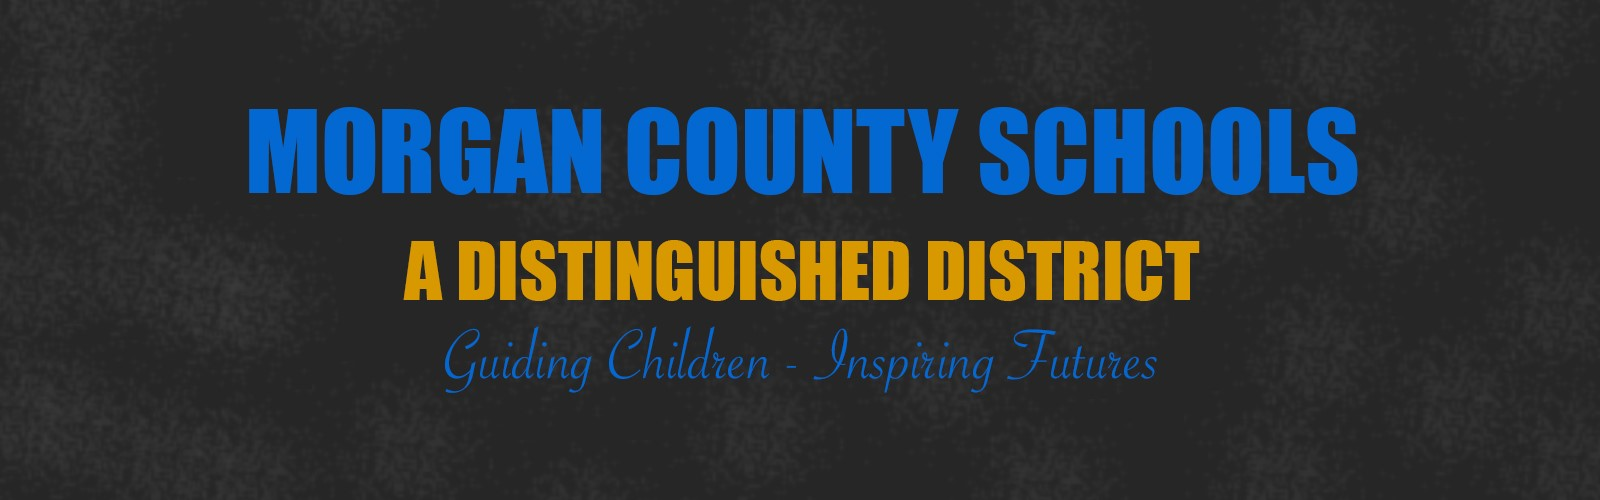 Morgan County Schools is now a Distinguished District